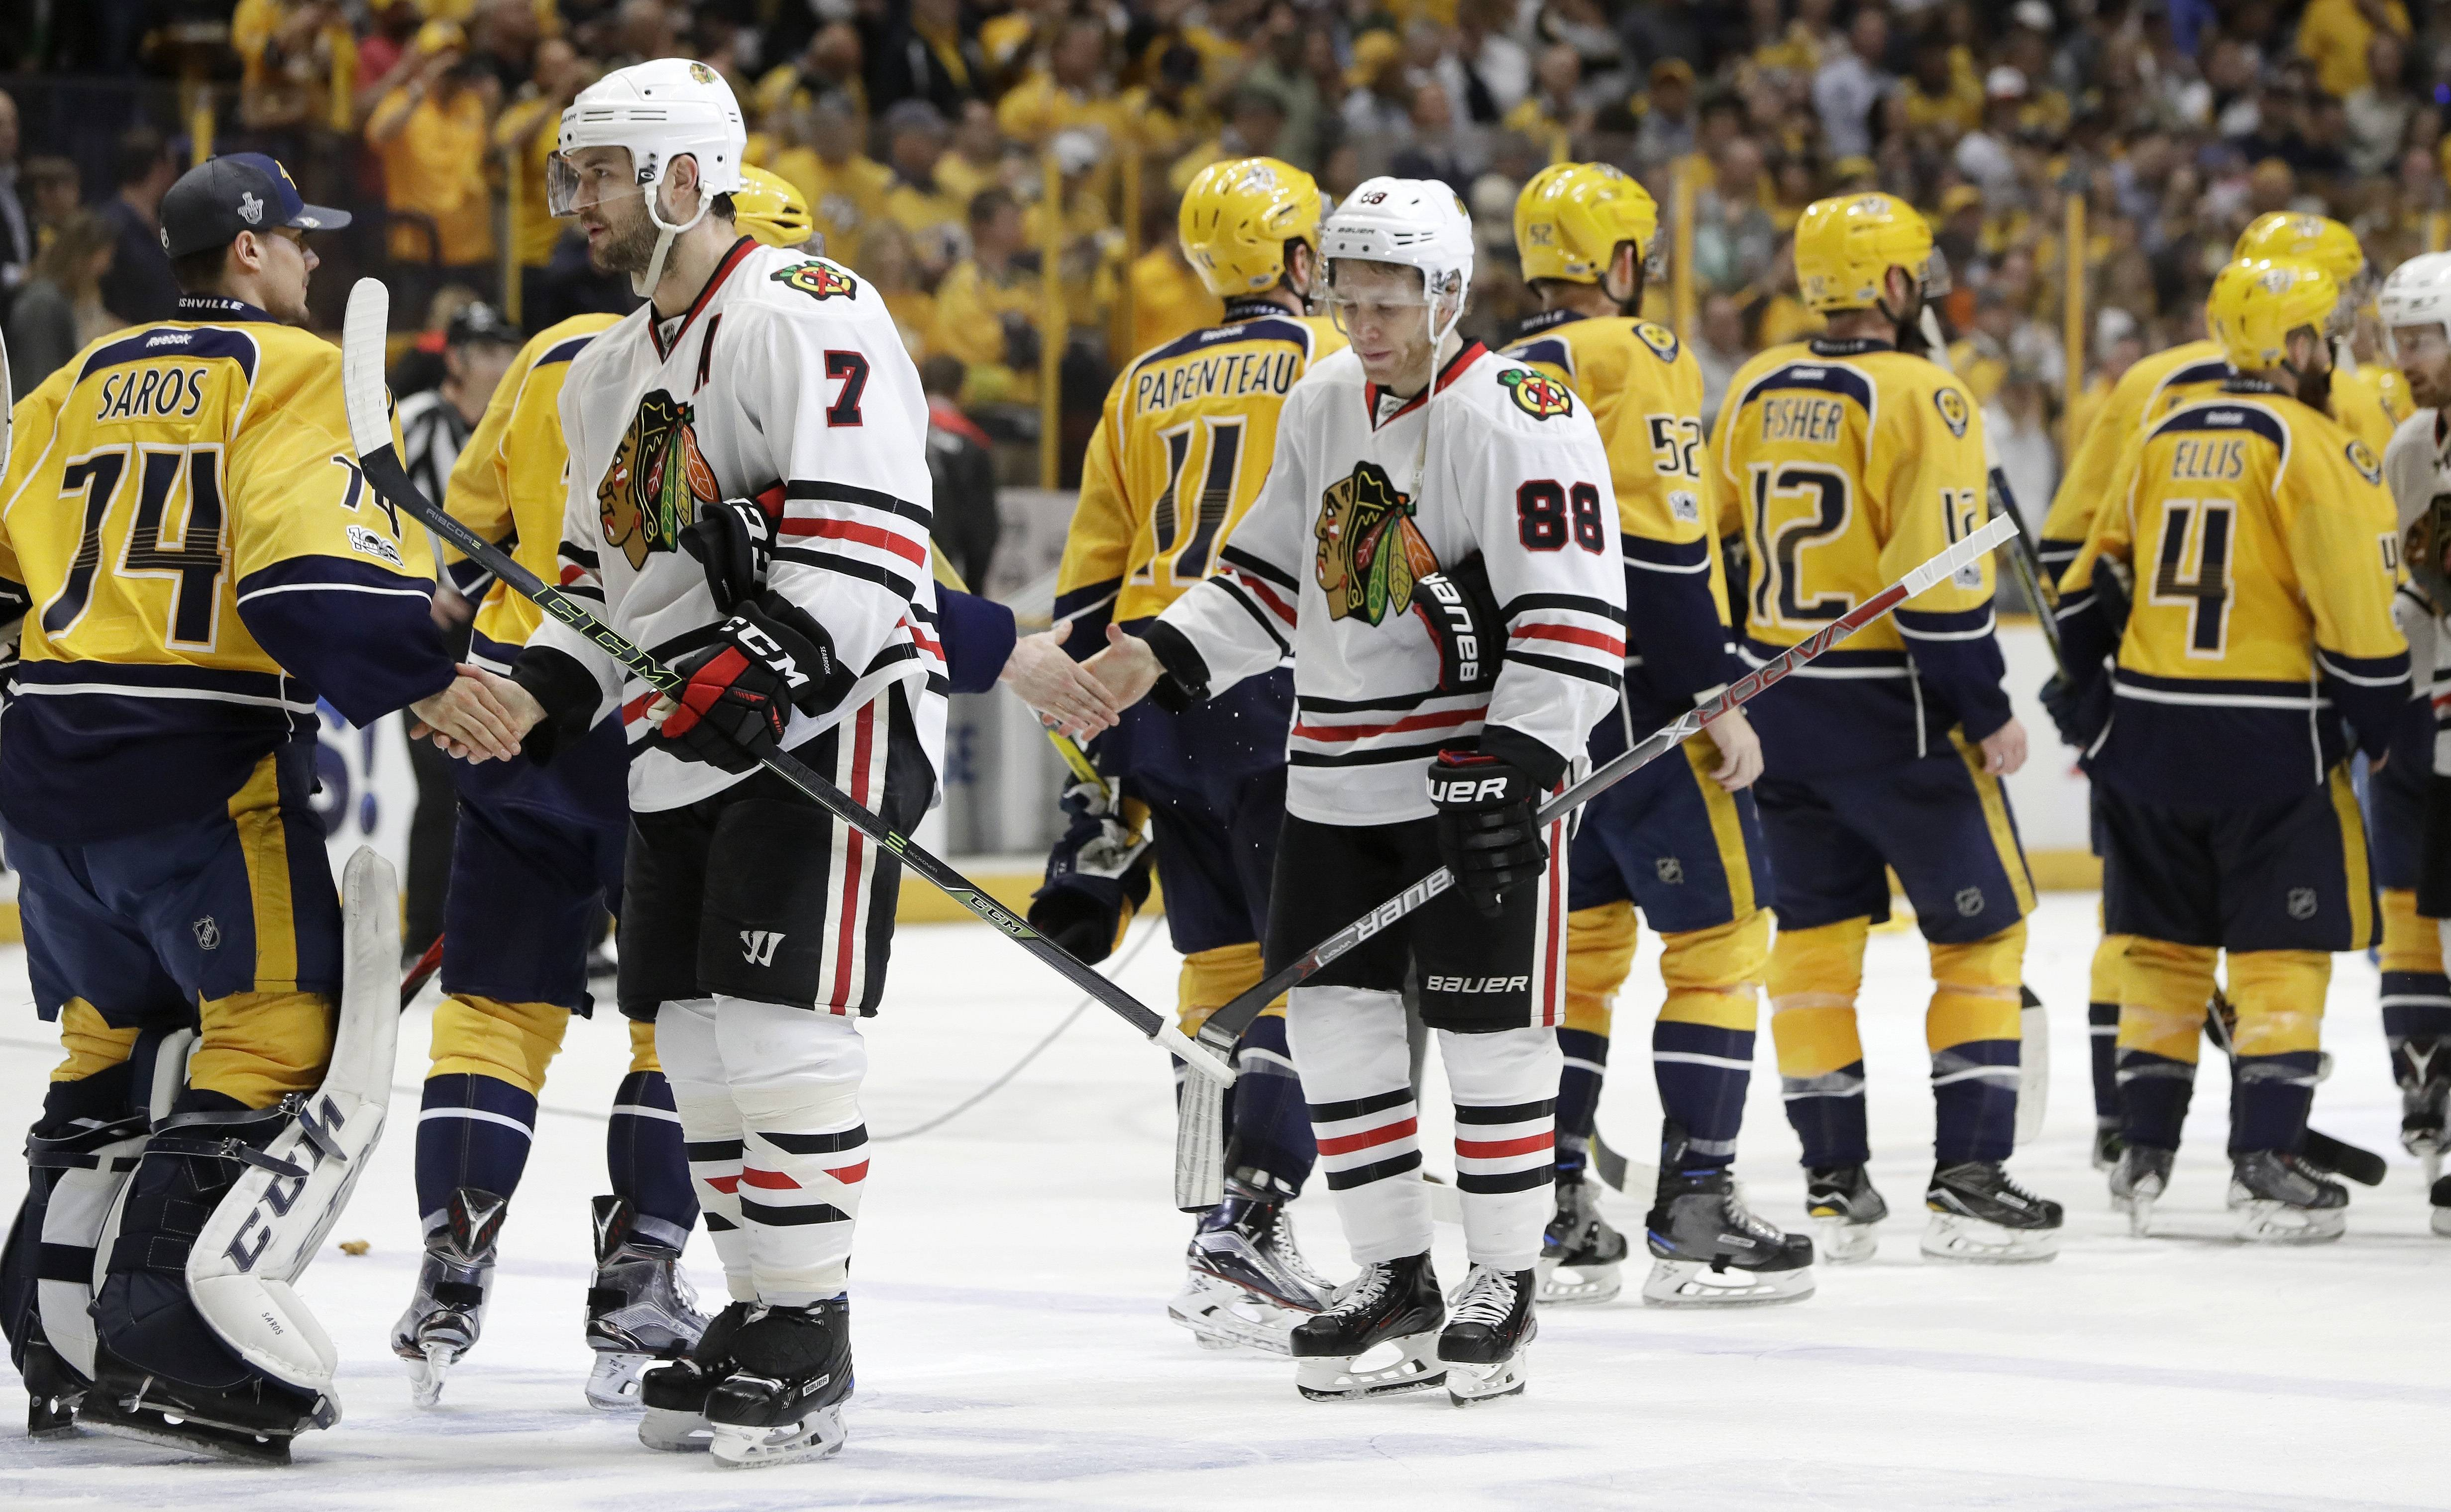 Chicago Blackhawks defenseman Brent Seabrook and right wing Patrick Kane shake hands with Nashville players after the Predators won 4-1 to sweep the first-round series.